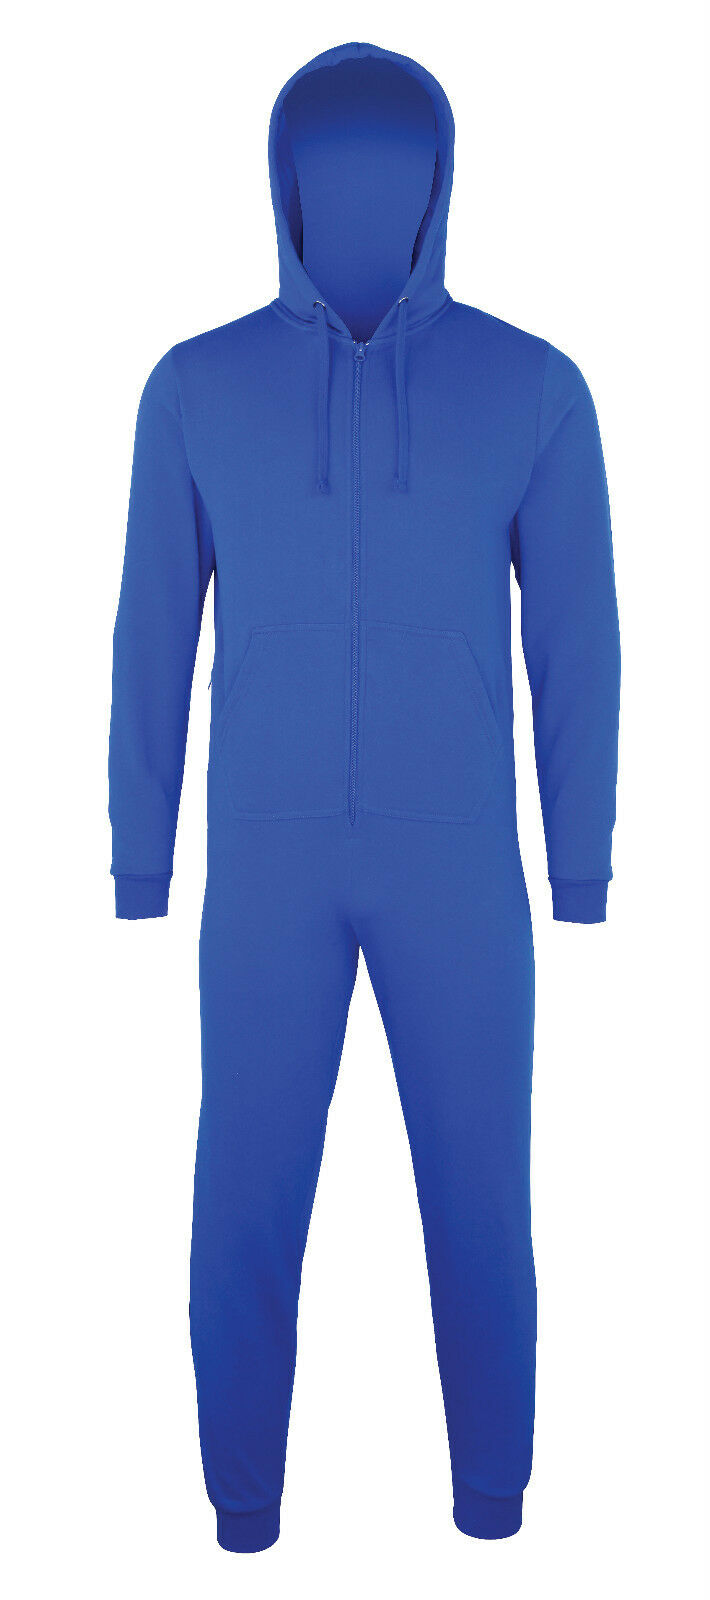 Ladies Mens Comfy Co CC001  Hood Zip Up All In One Jumpsuit Sizes XS-2XL